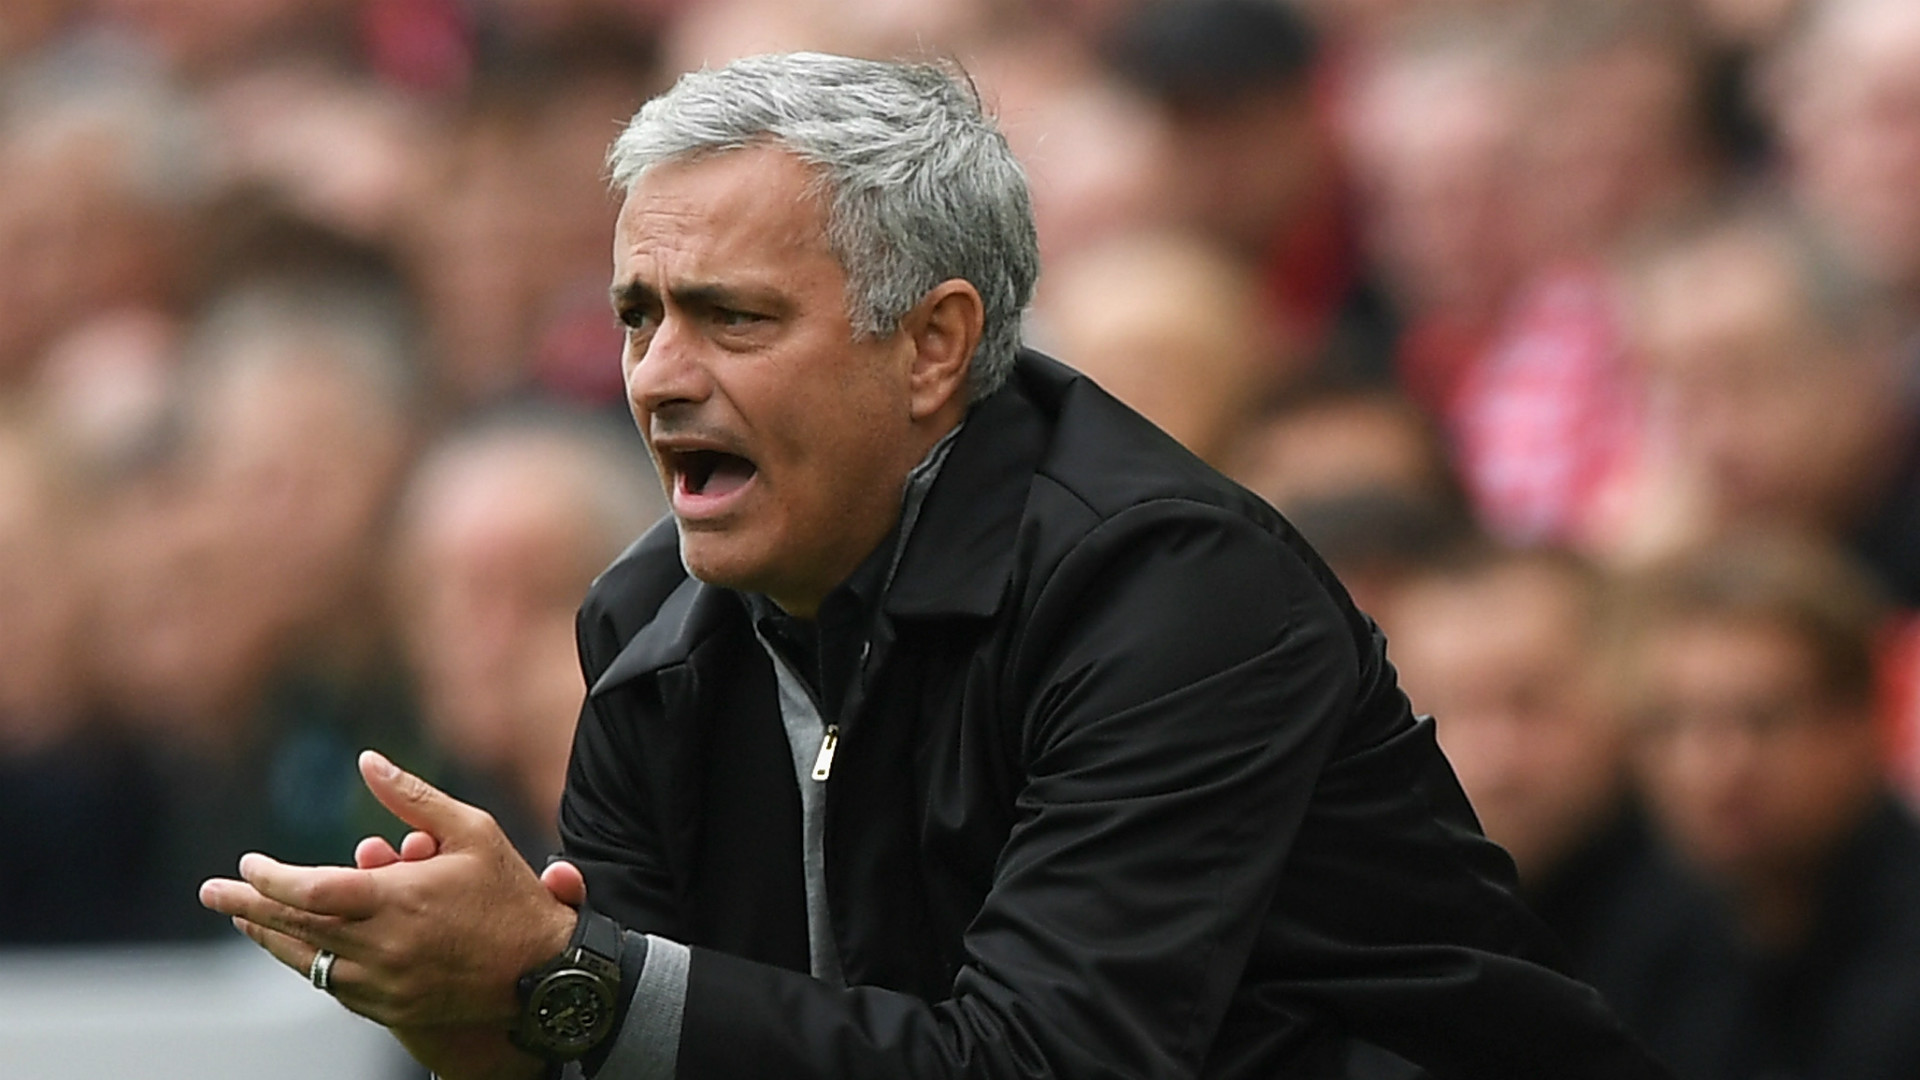 You Are A Little Man And A Fake Conte Blasts Mourinho